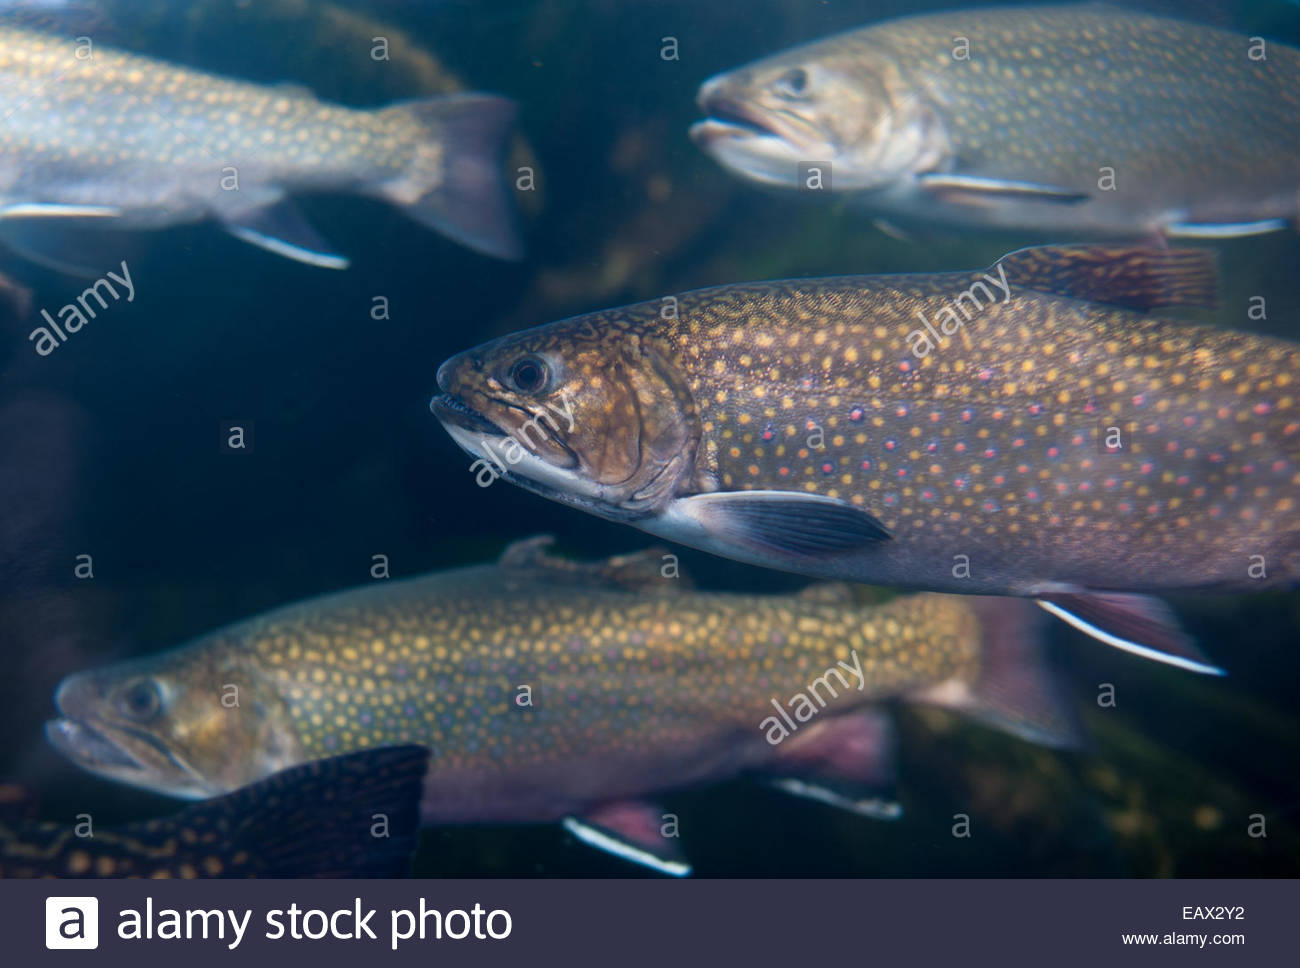 Rainbow trout in a fish tank at the Baltimore National Aquarium. - Stock Image